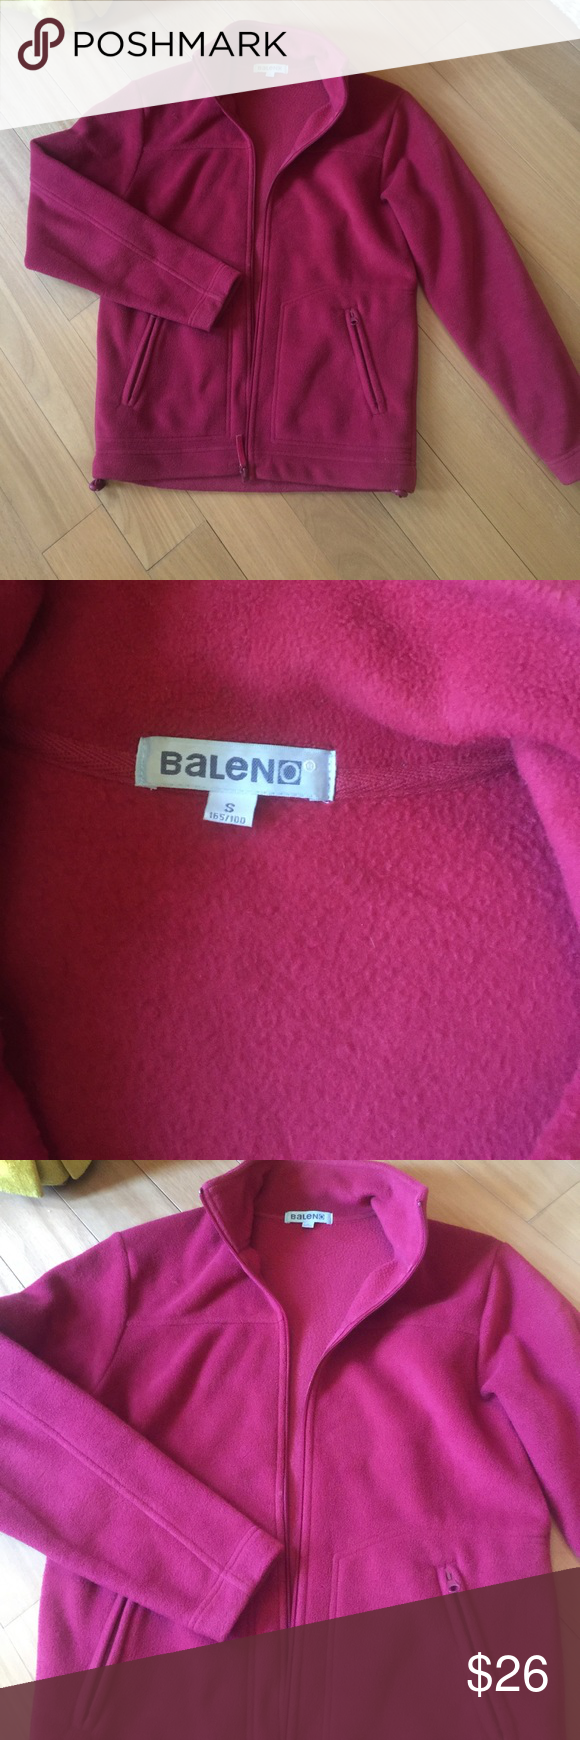 Baleno Winter Top Conditioning And Fe Balen Pink